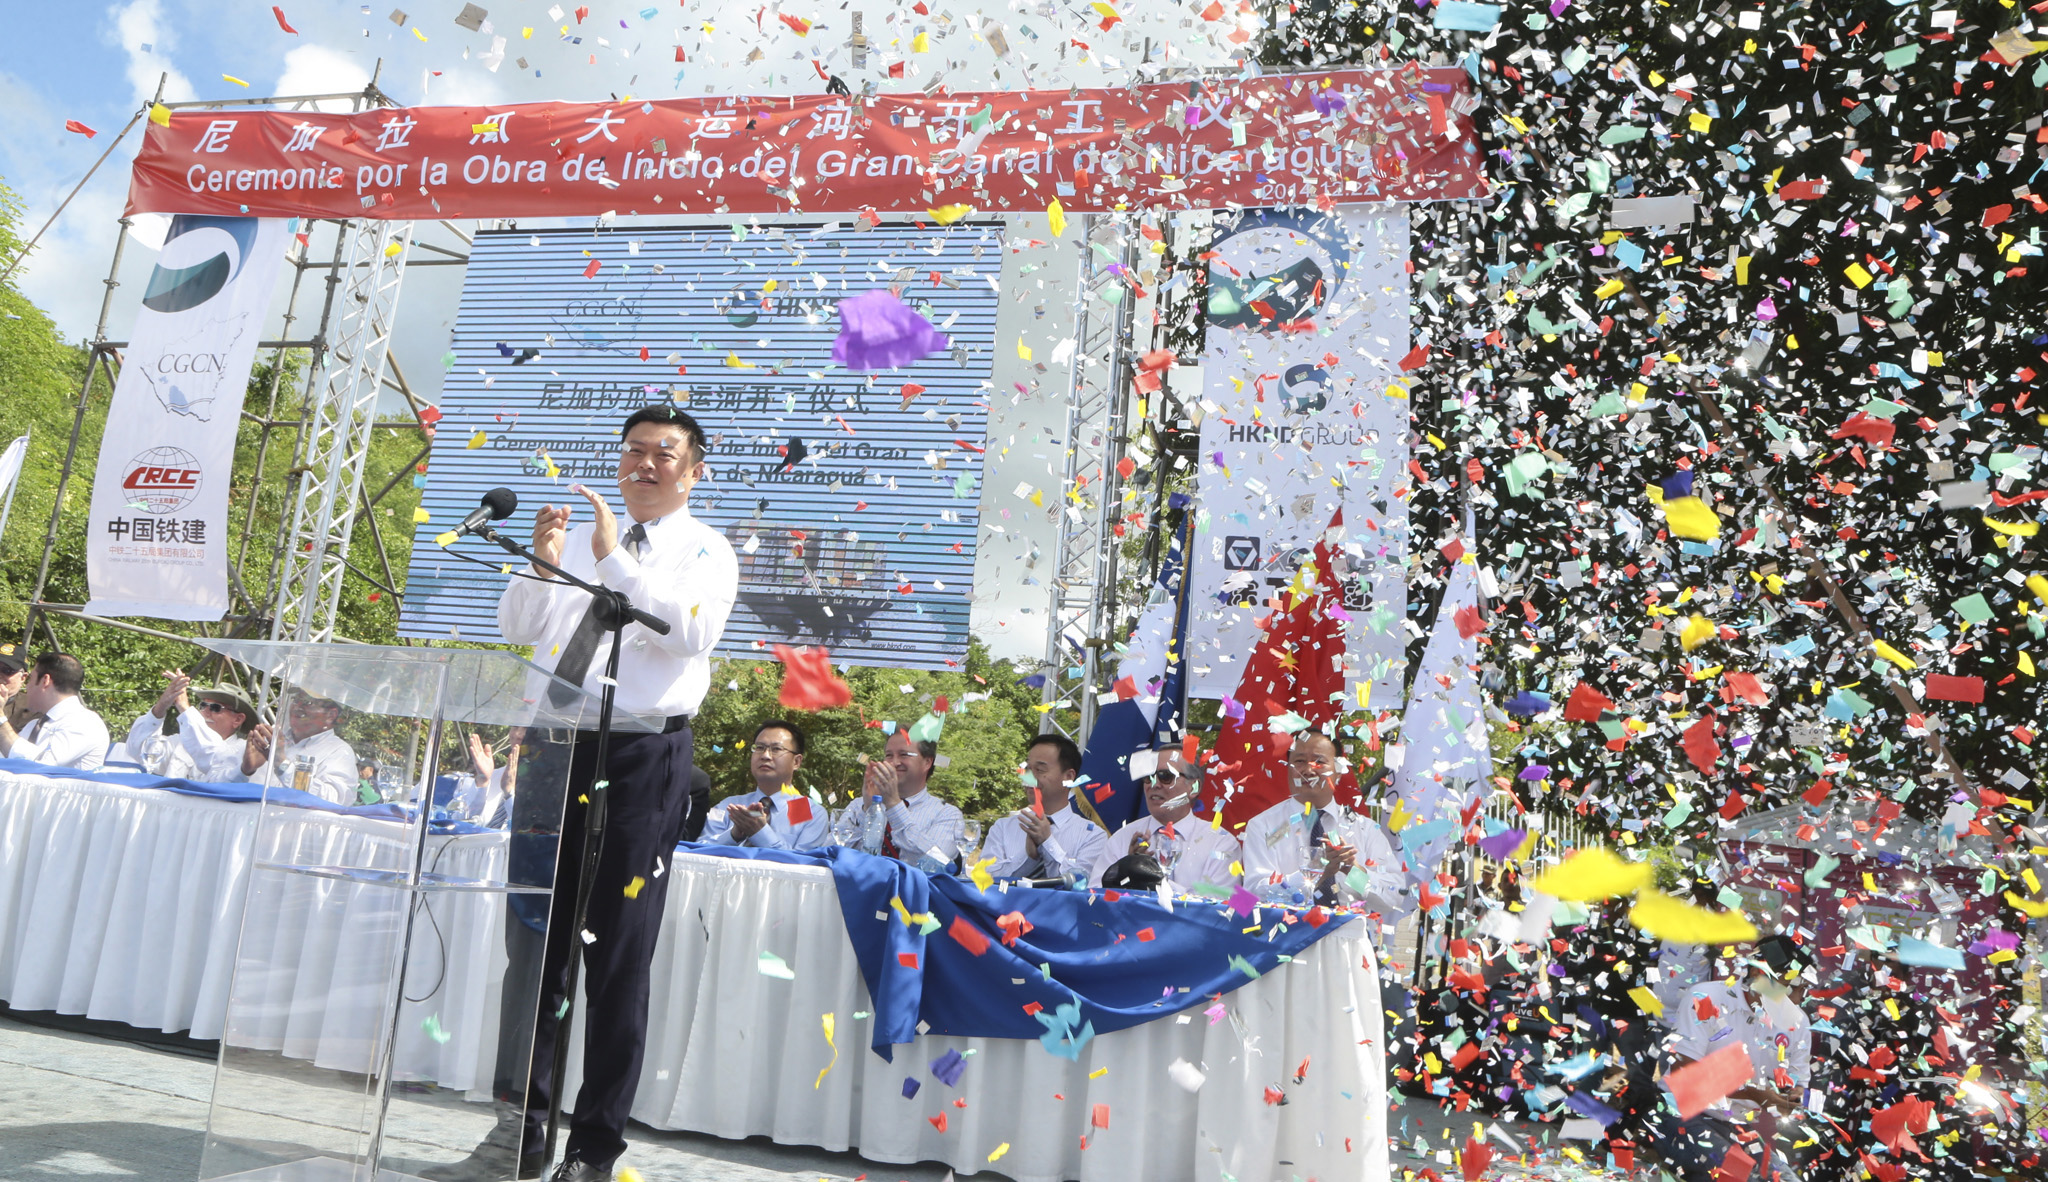 HK Nicaragua Canal Development Investment Co Ltd Chairman Wang Jing speaks during the start of the first works of the Interoceanic Grand Canal in Brito town Dec. 22, 2014